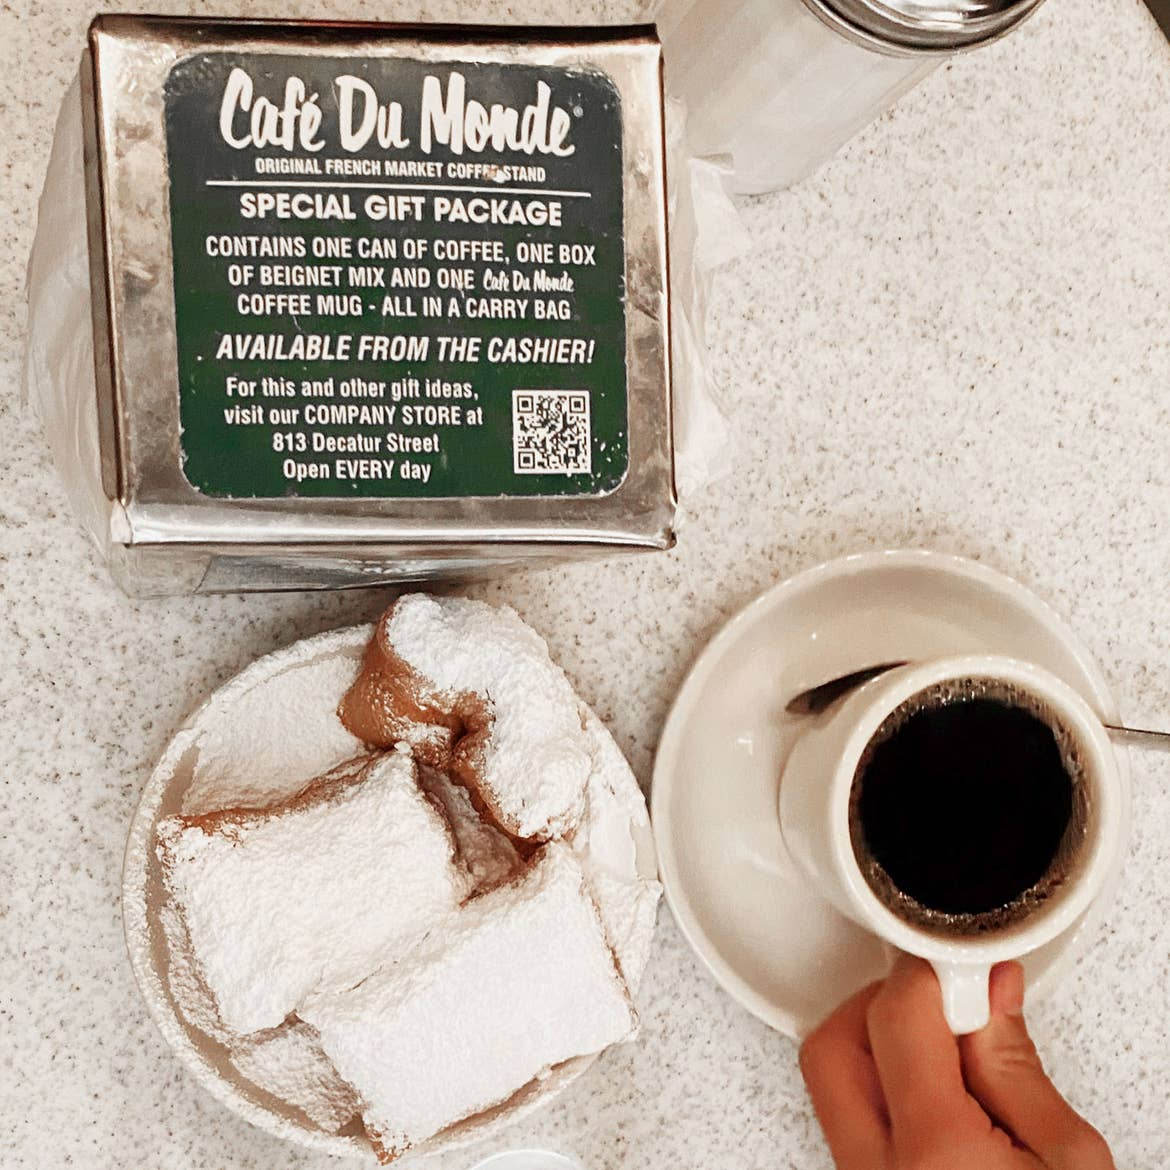 A Cafe Du Monde napkin box with beignets placed on a table with some coffee on white plates.